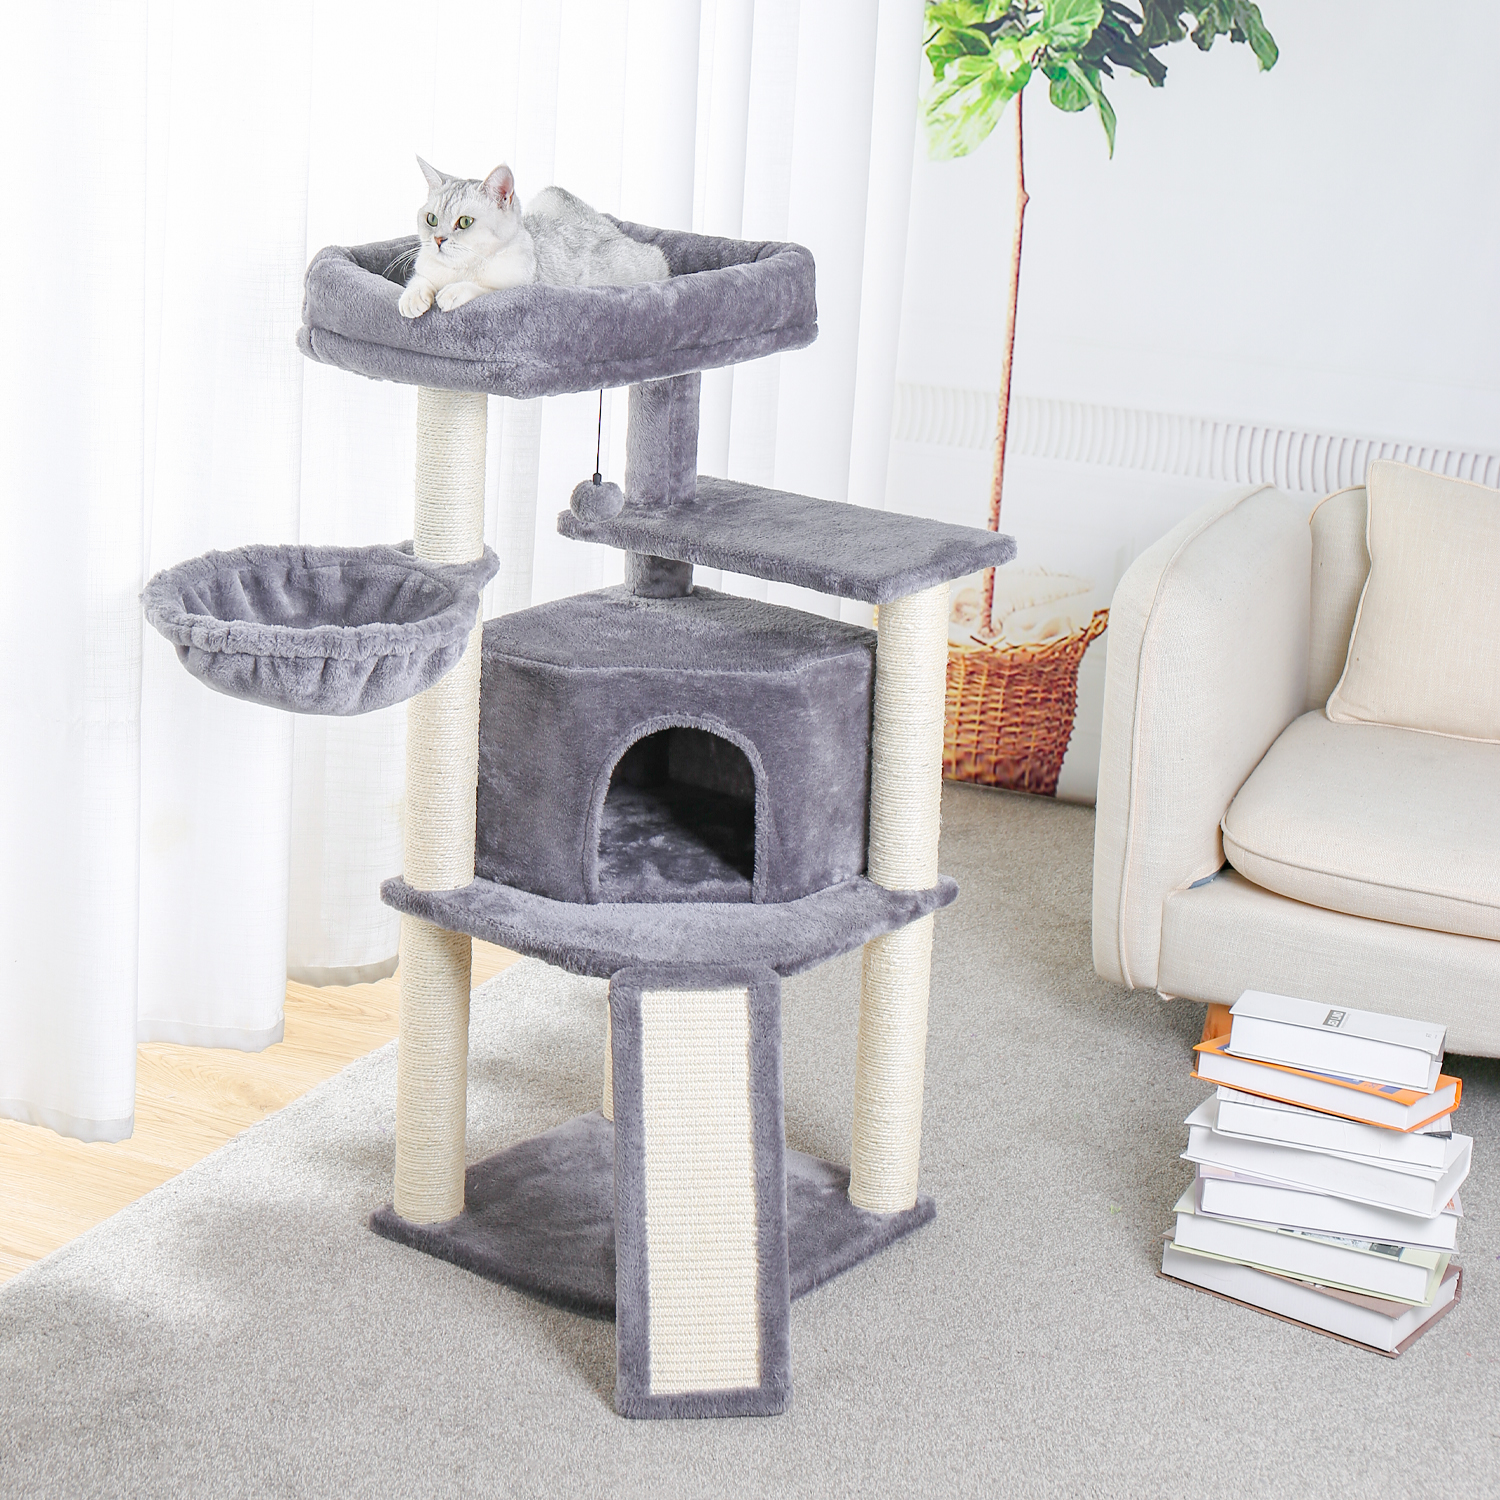 <font><b>Pet</b></font> <font><b>Cat</b></font> <font><b>Tree</b></font> <font><b>Tower</b></font> Condos House Scratcher Scratching Posts for <font><b>Cat</b></font> Climbing <font><b>Tree</b></font> Toy Activity Protecting Furniture <font><b>Pet</b></font> <font><b>Cat</b></font> House image